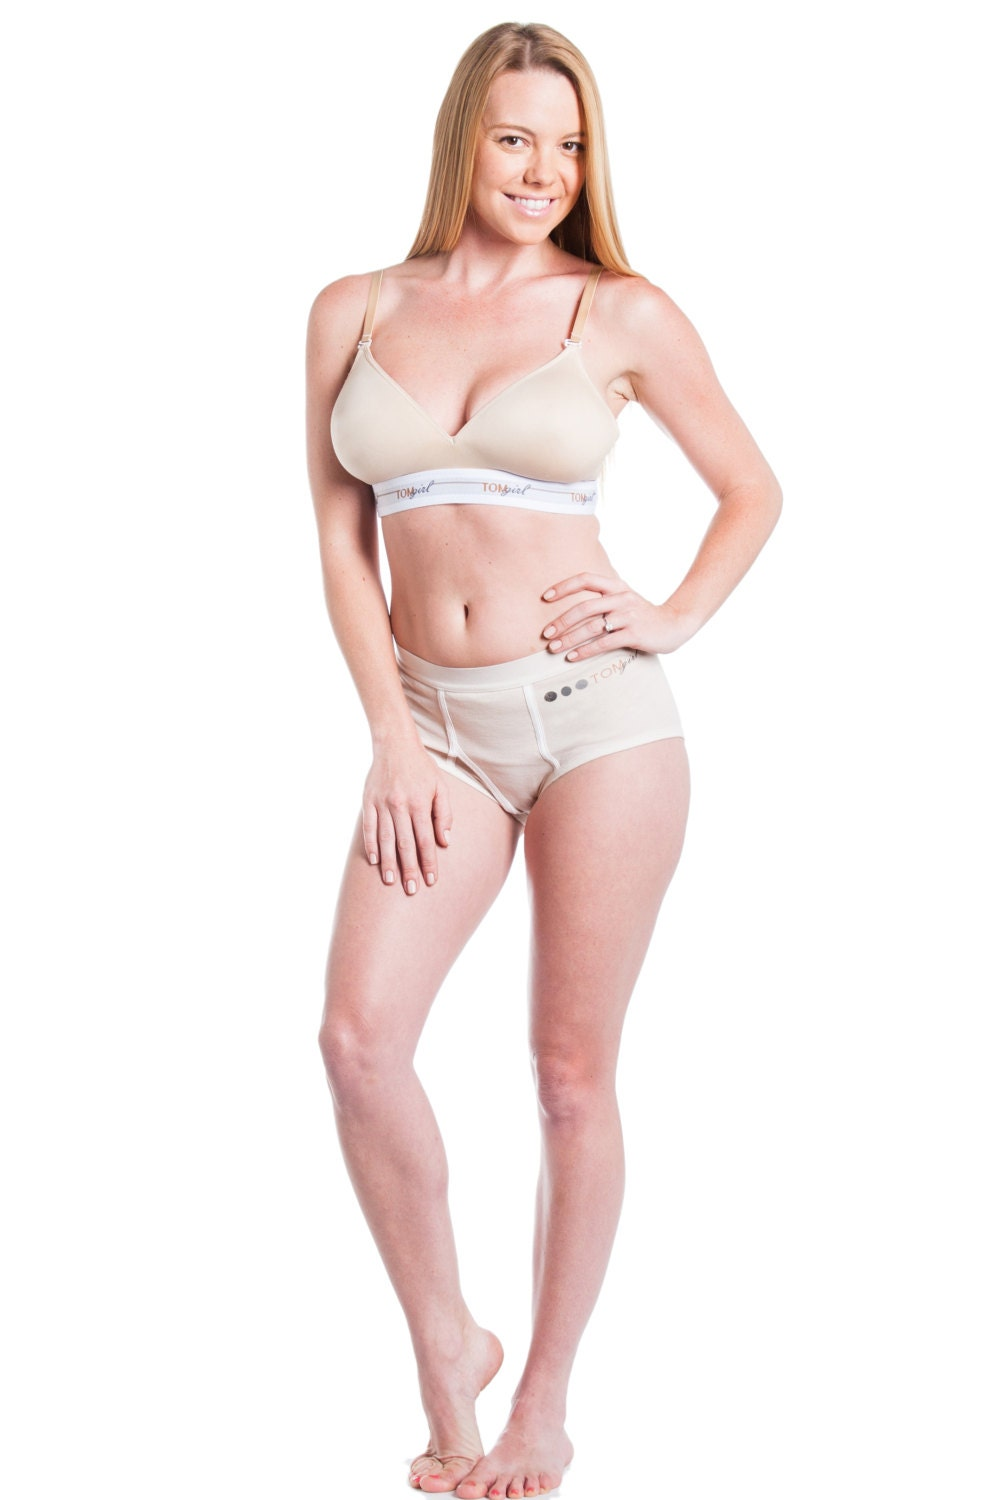 Bra experts recommend professional bra fittings from the lingerie department of a clothing store or a specialty lingerie store, especially for cup sizes D or larger, and particularly if there has been significant weight gain or loss, or if the wearer is continually adjusting her bra.